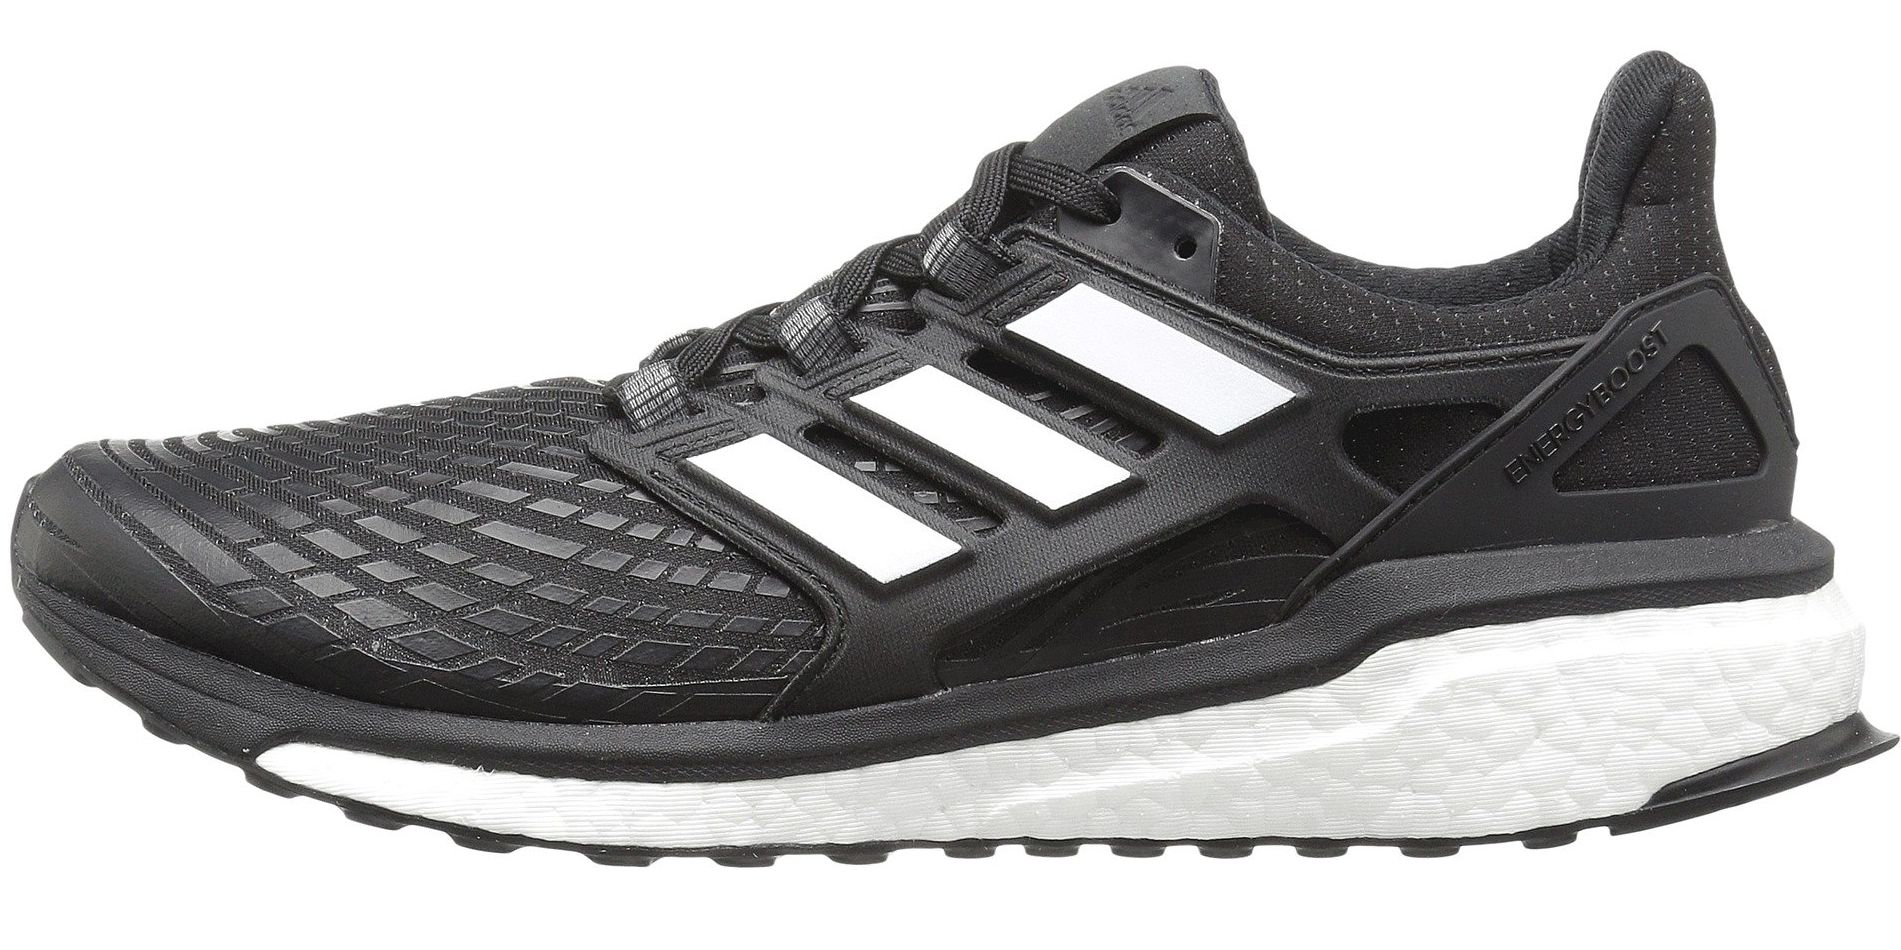 87c4cfb12 Best Adidas Running Shoes